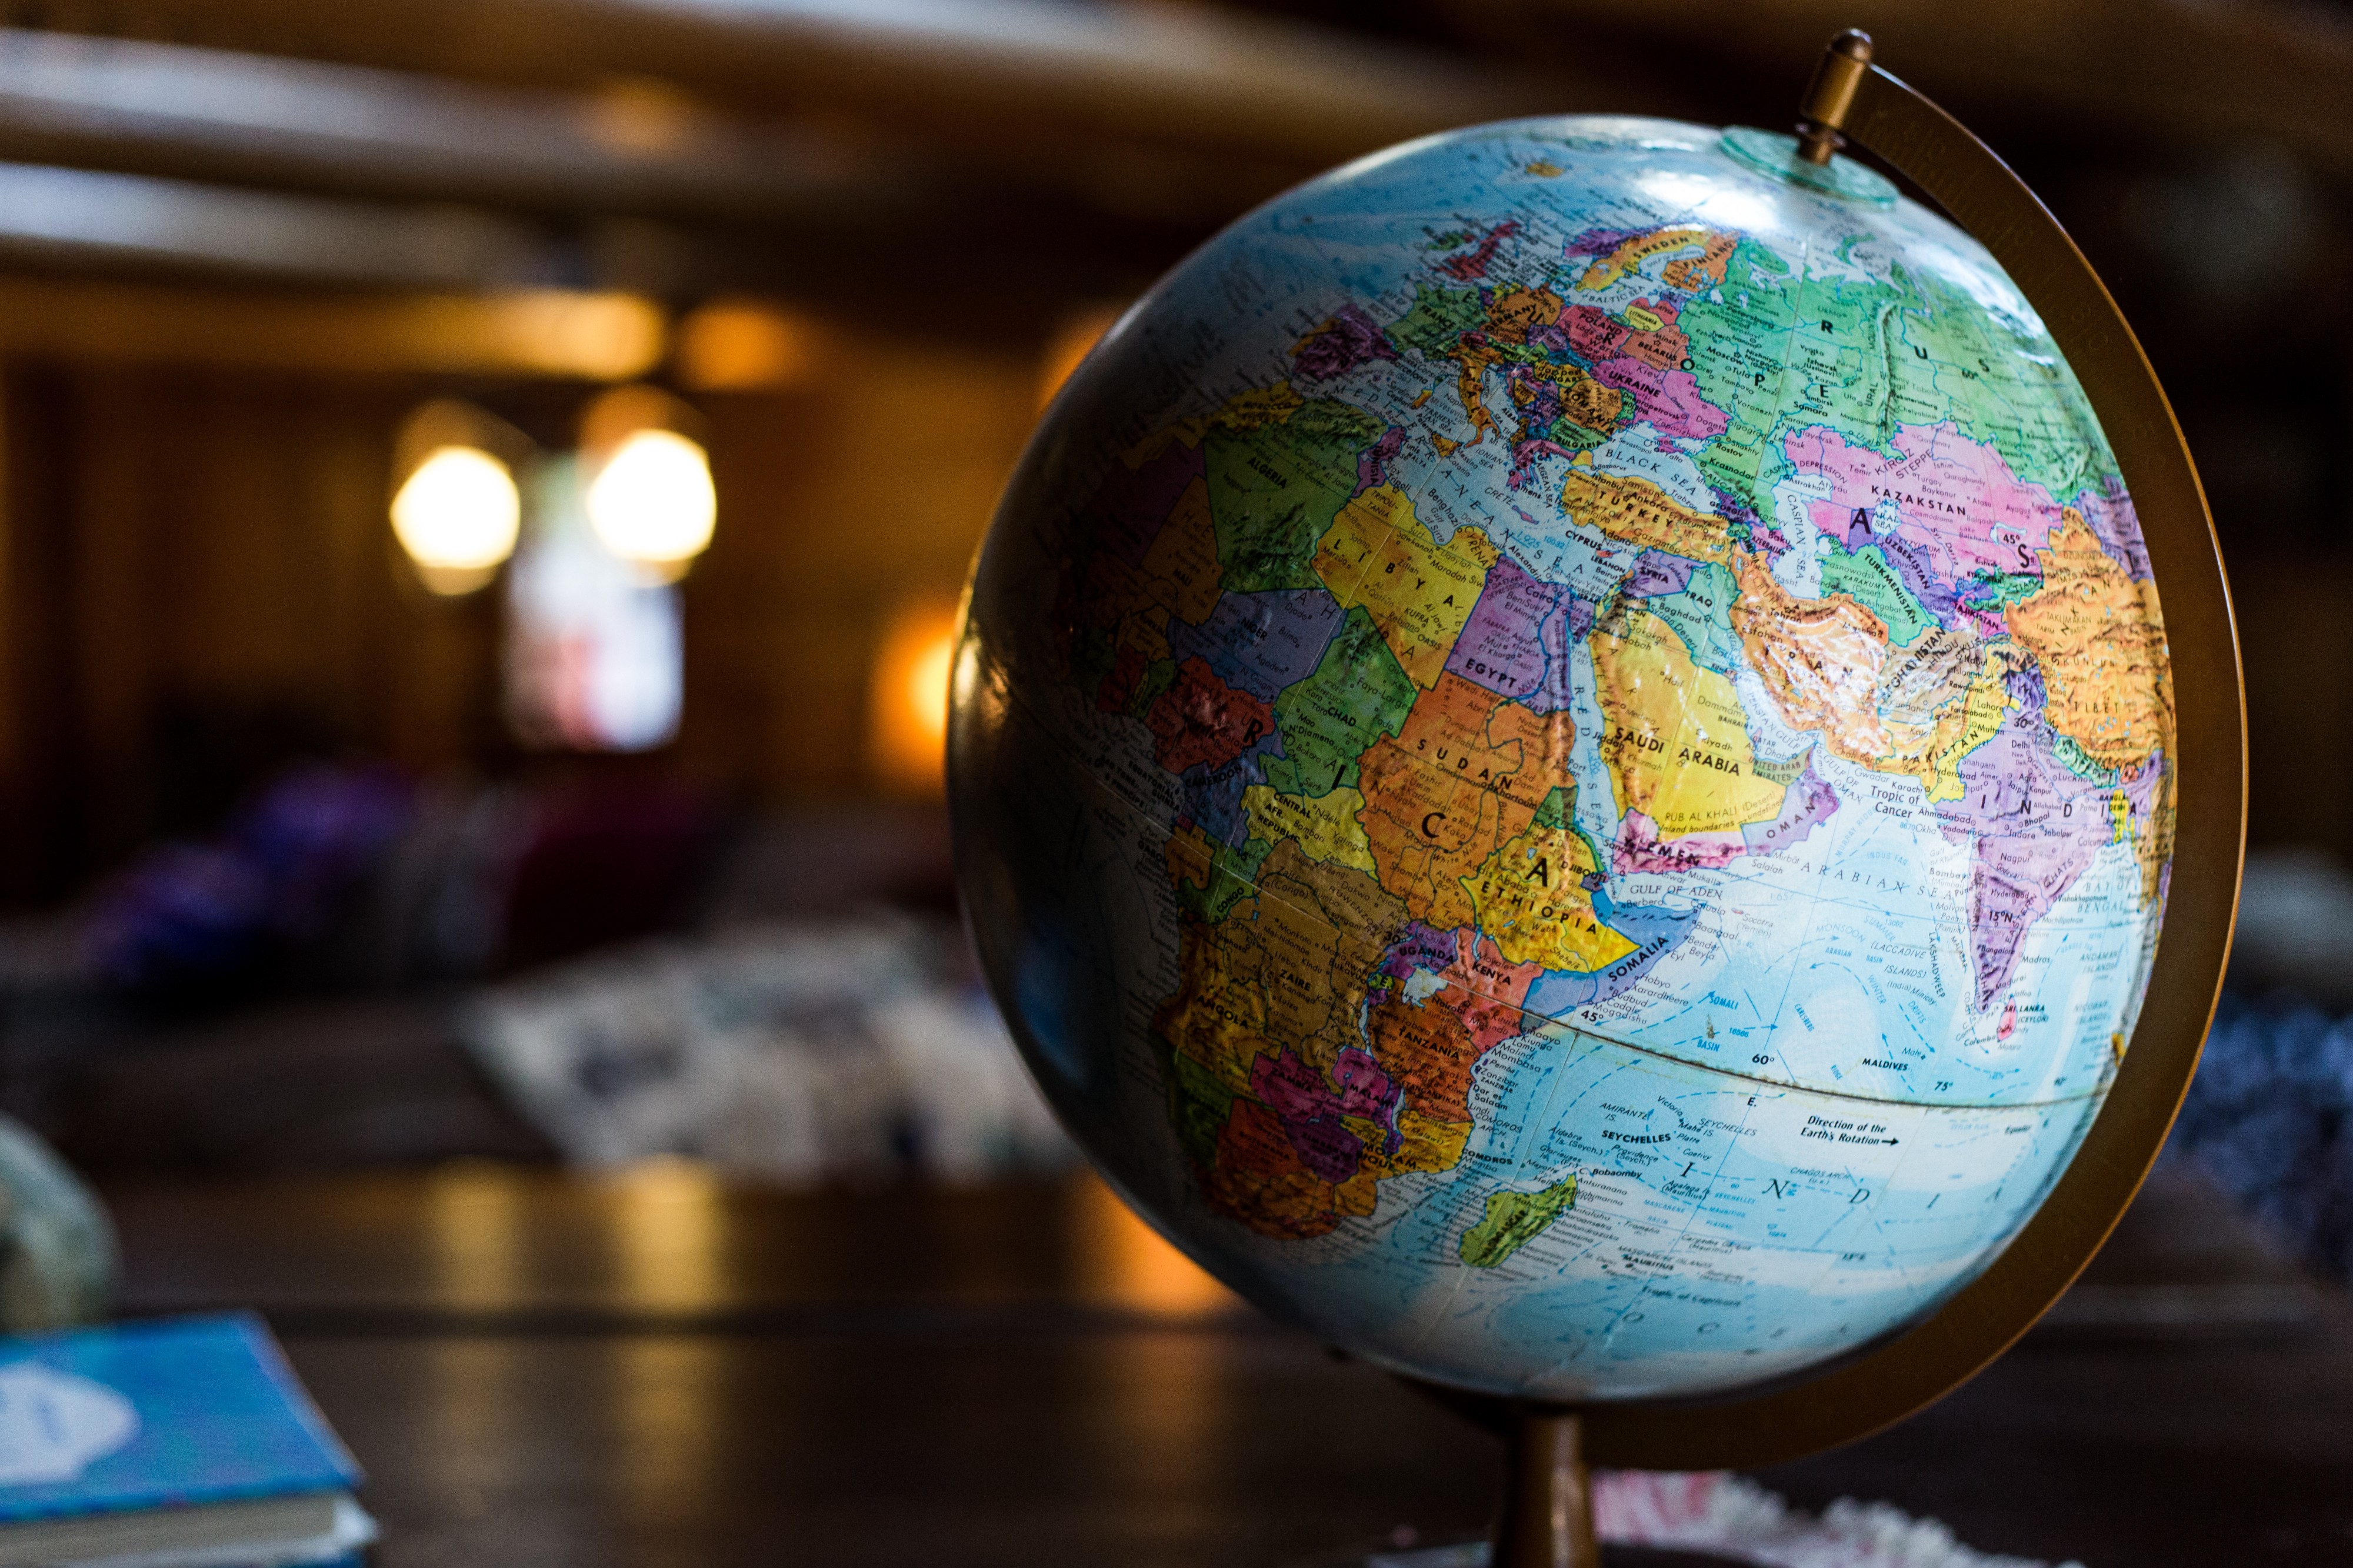 A globe on a table in a library